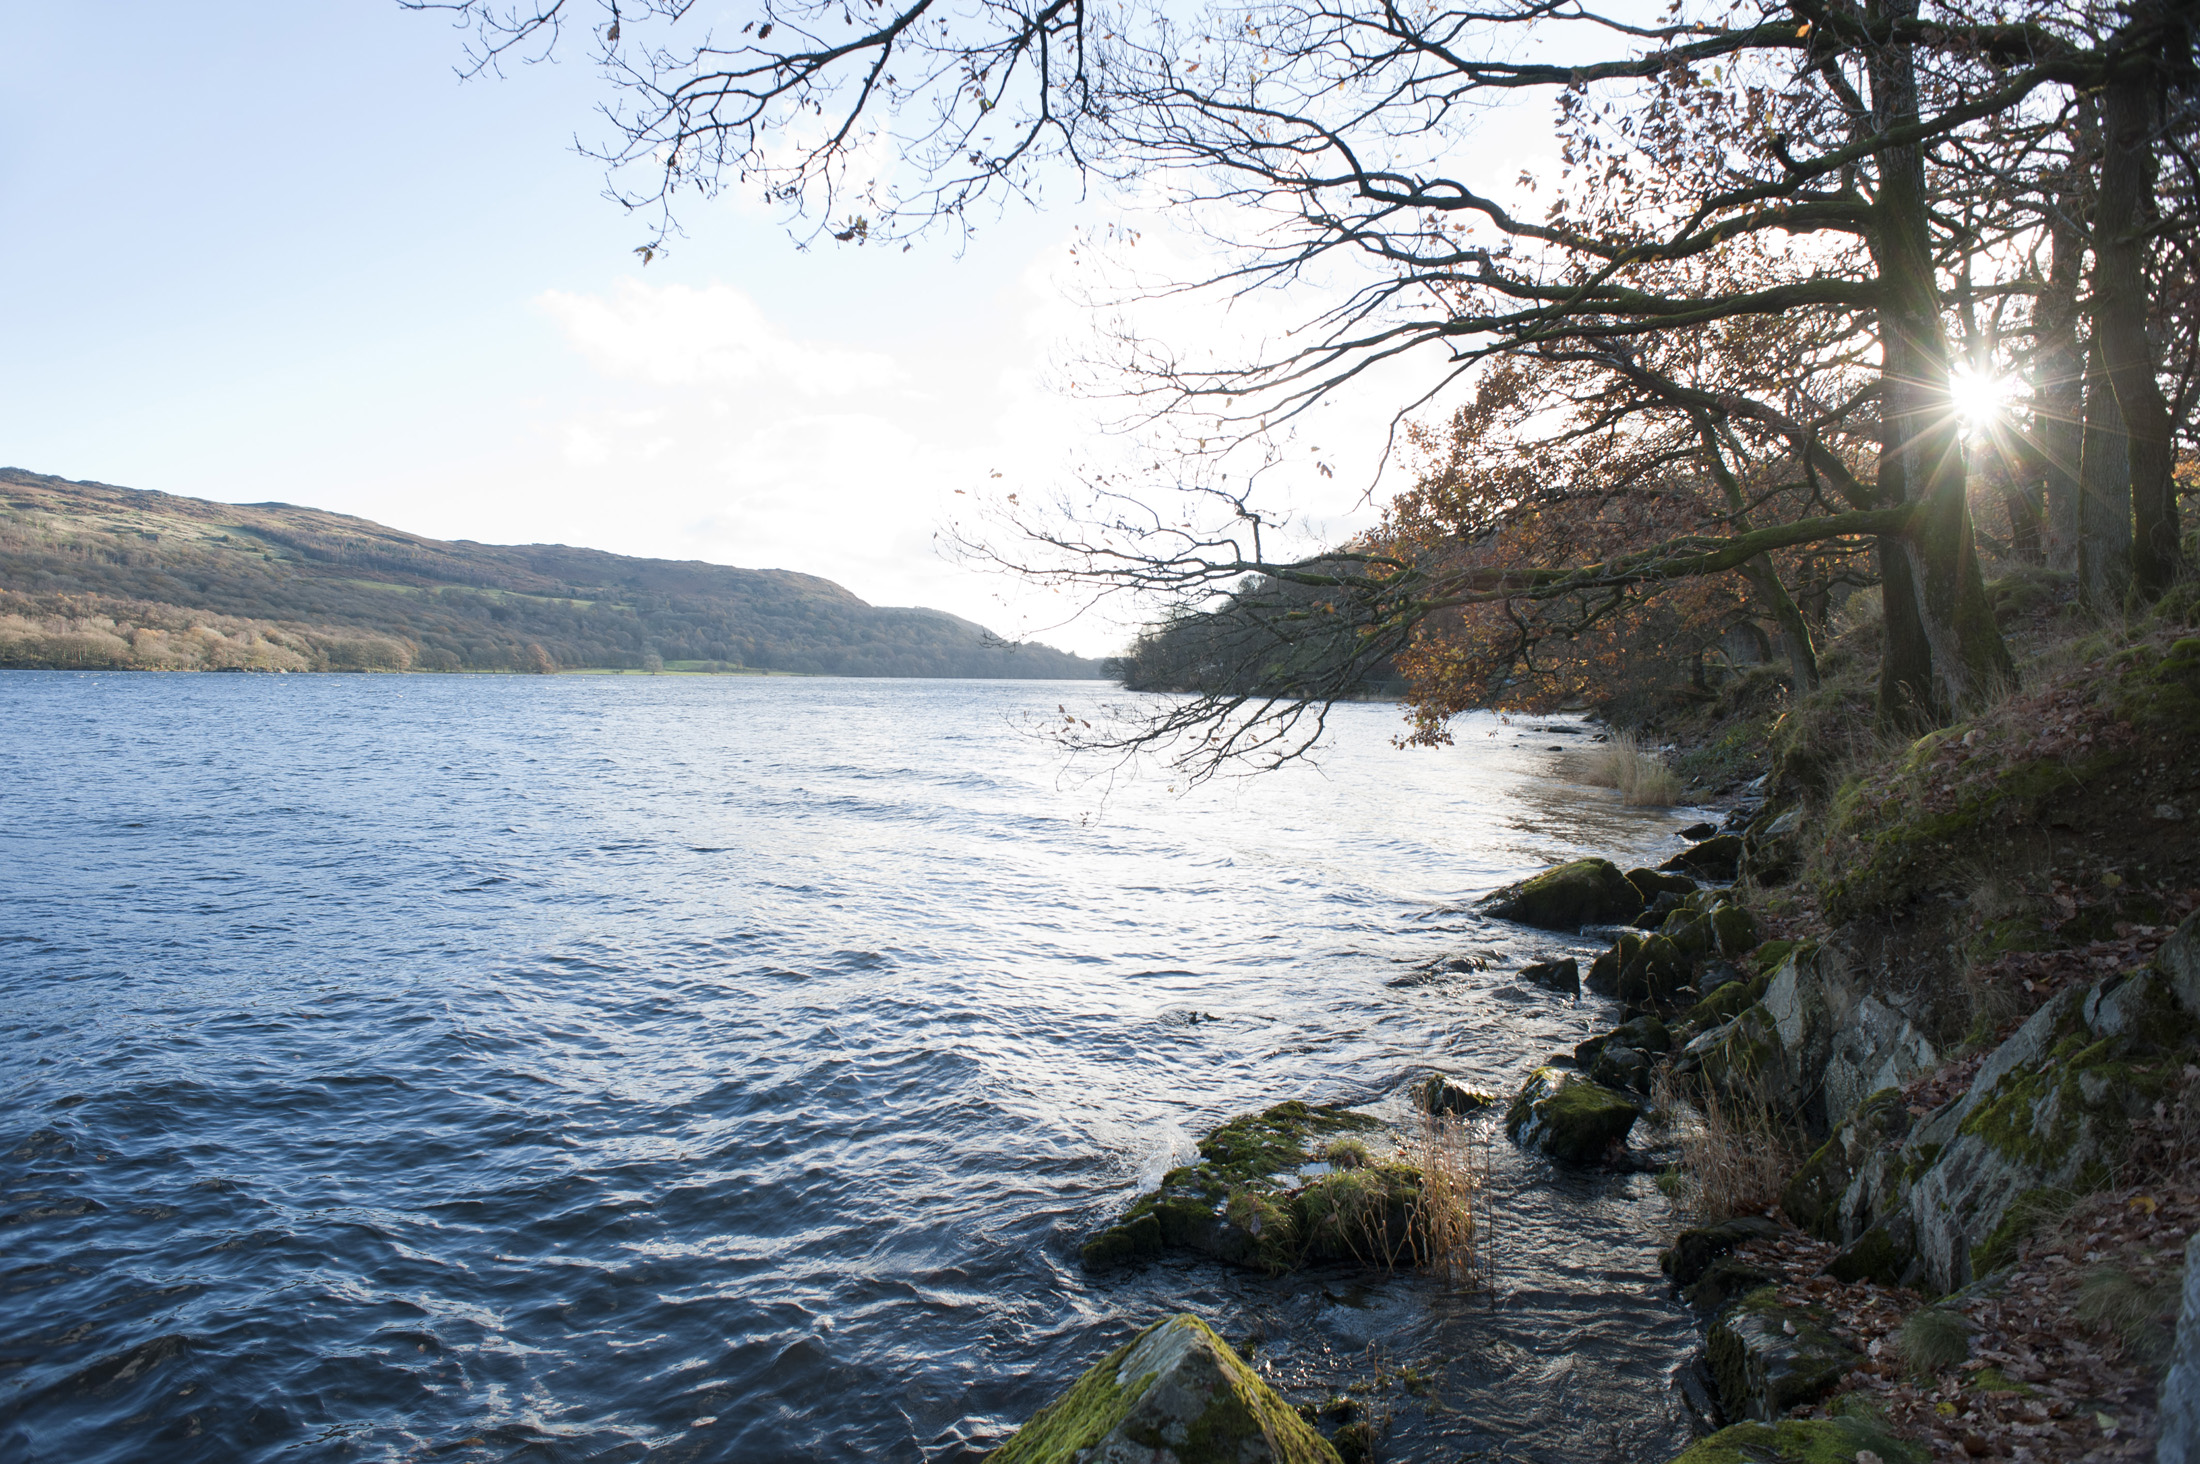 sun glinting over the surface of coniston water in the english lake district